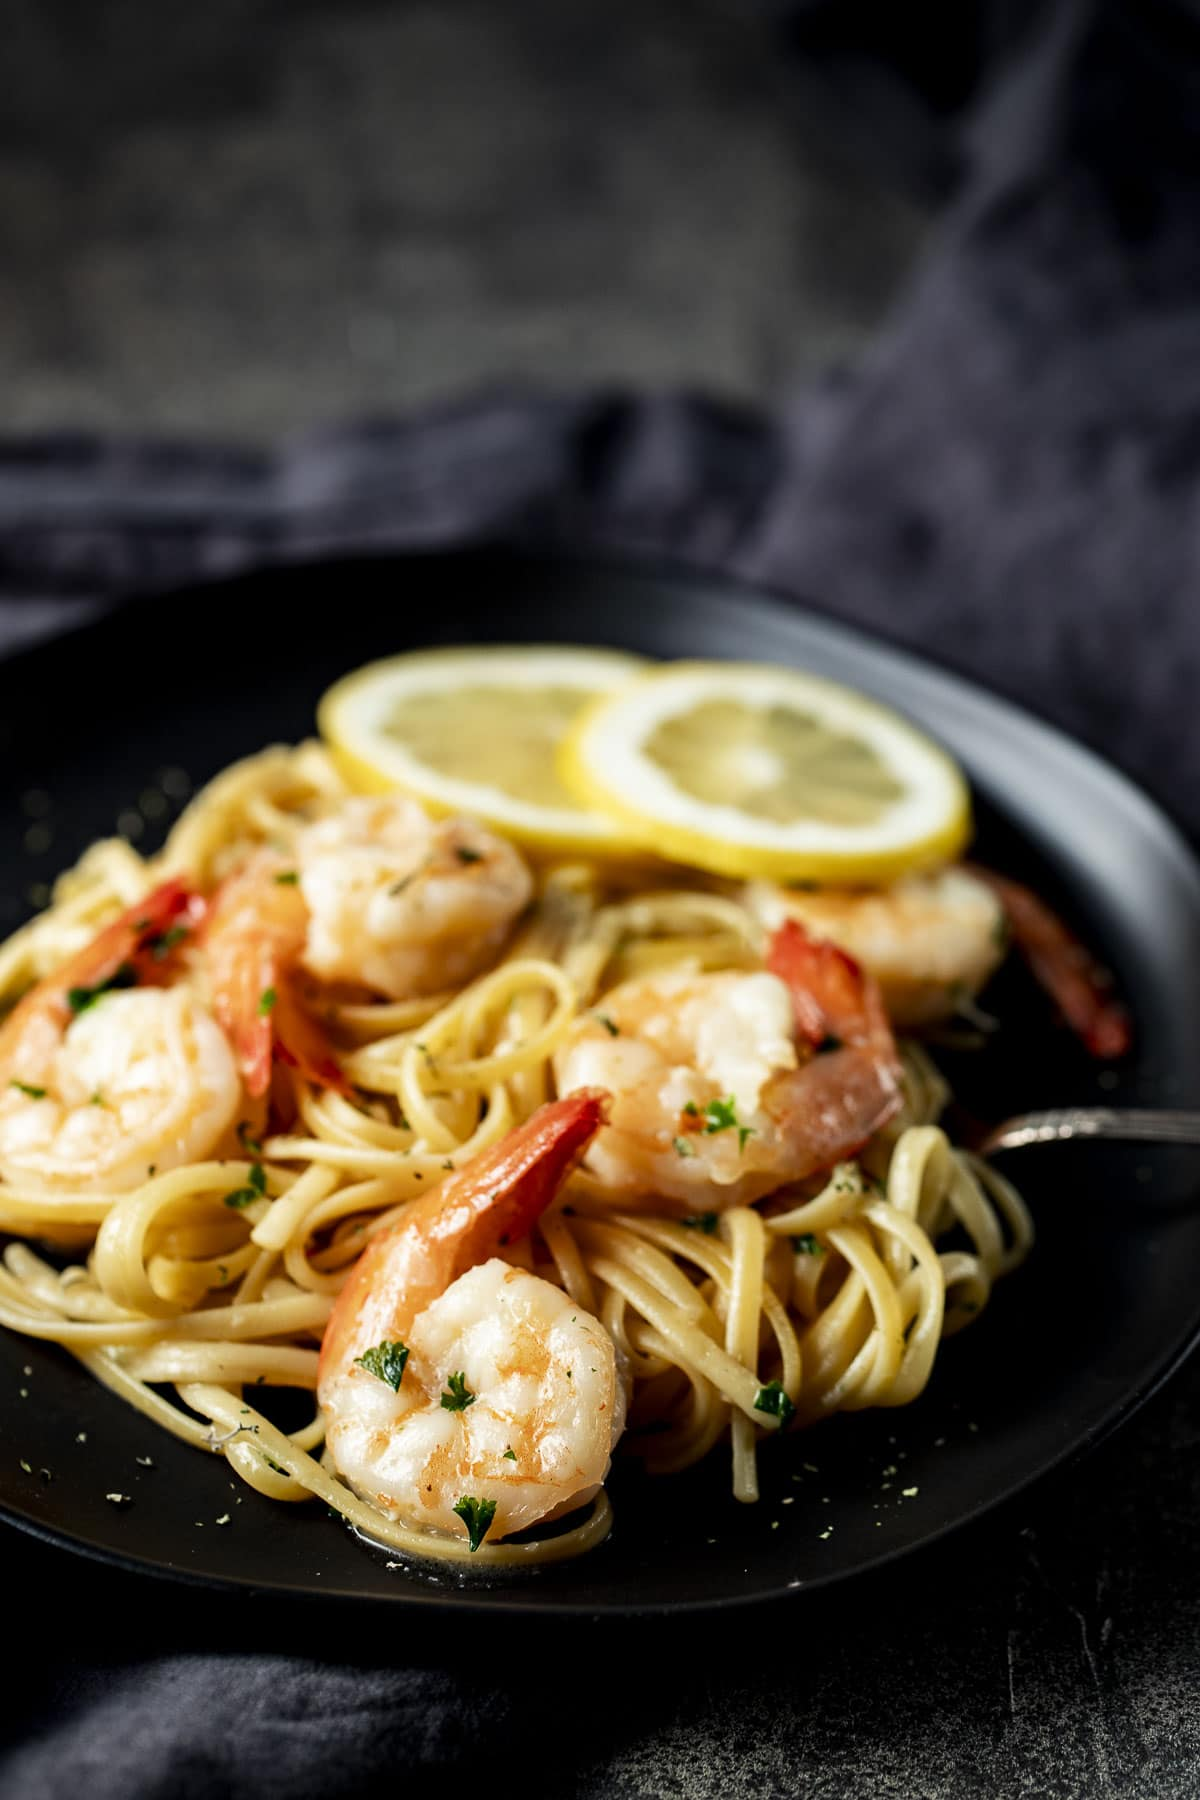 Side view of shrimp scampi on a black plate.